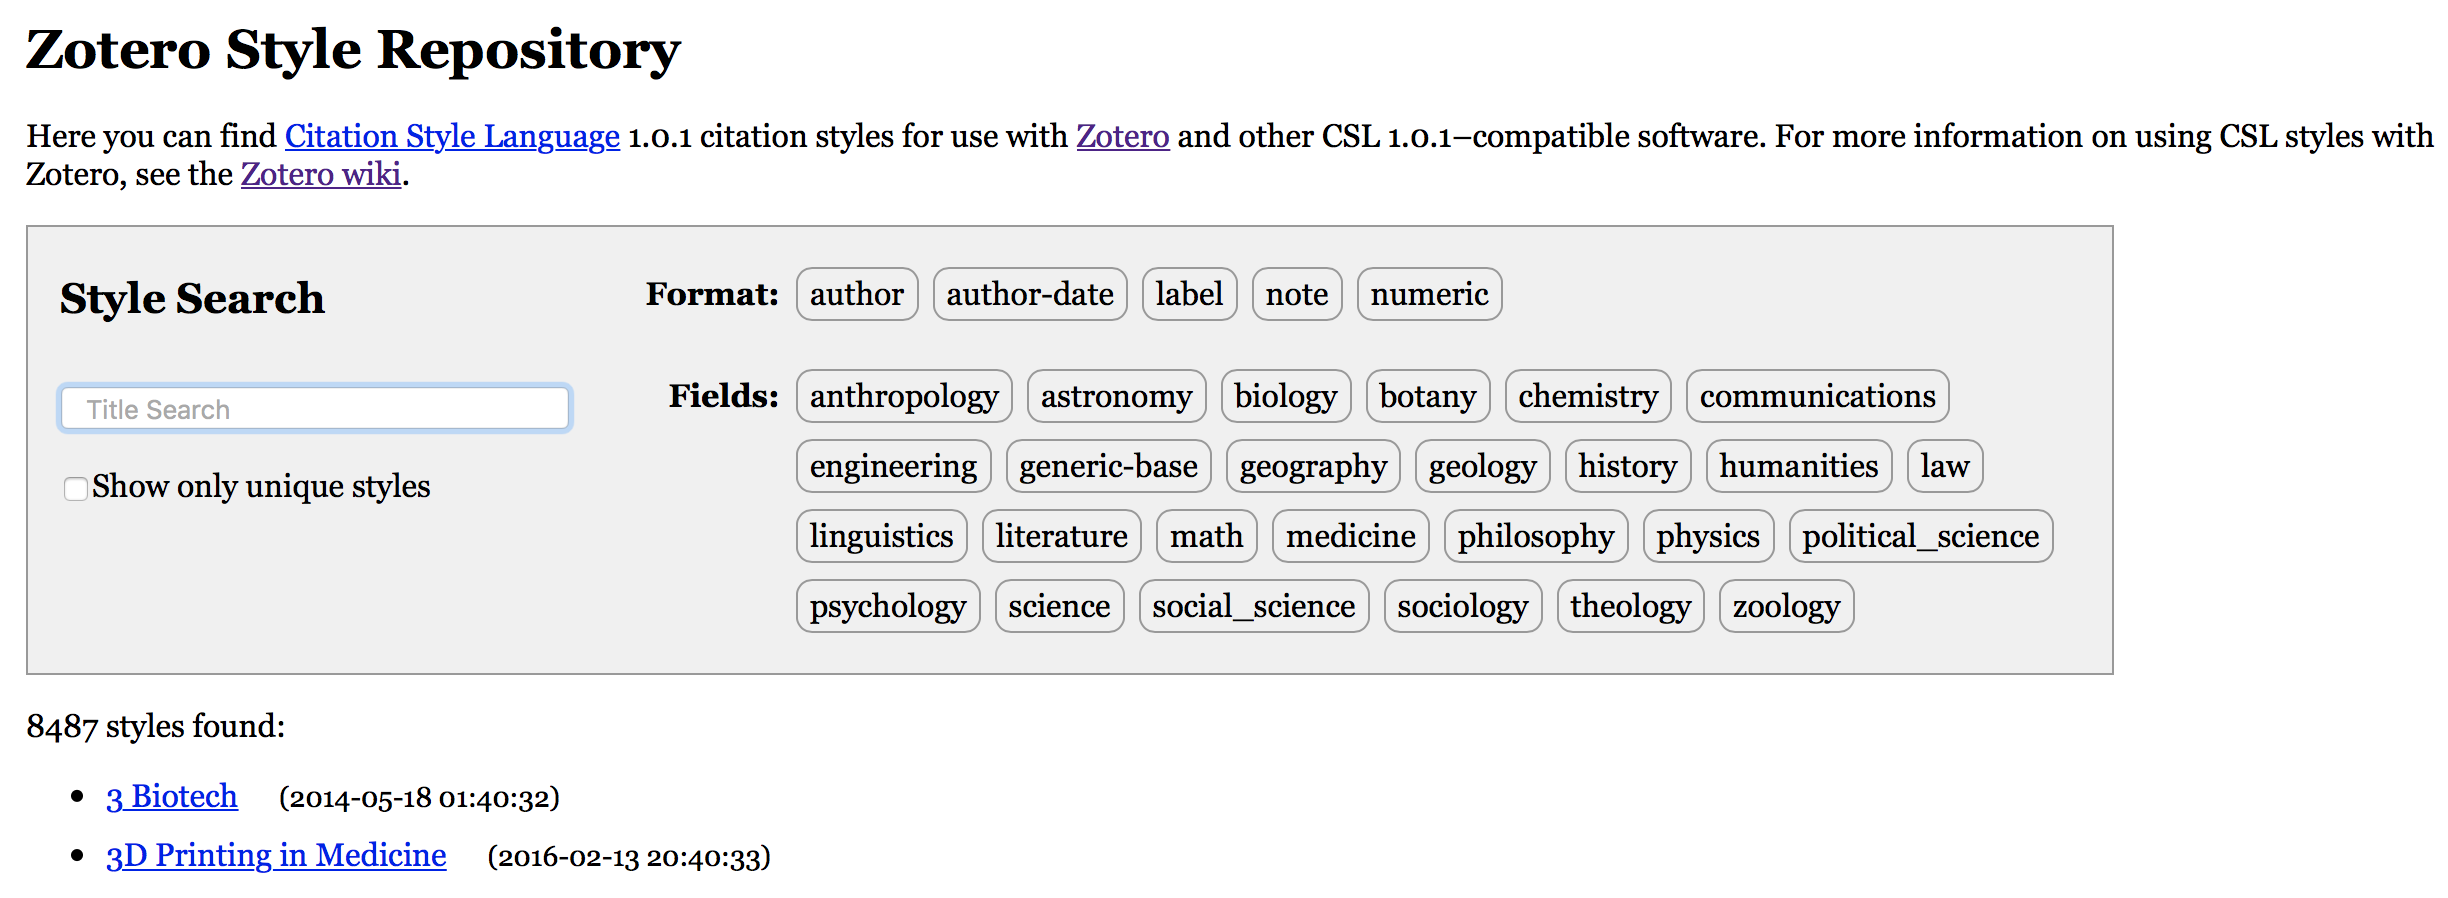 Styles And Search For Annotated Currenty,  There Are Two Annotated Styles Available